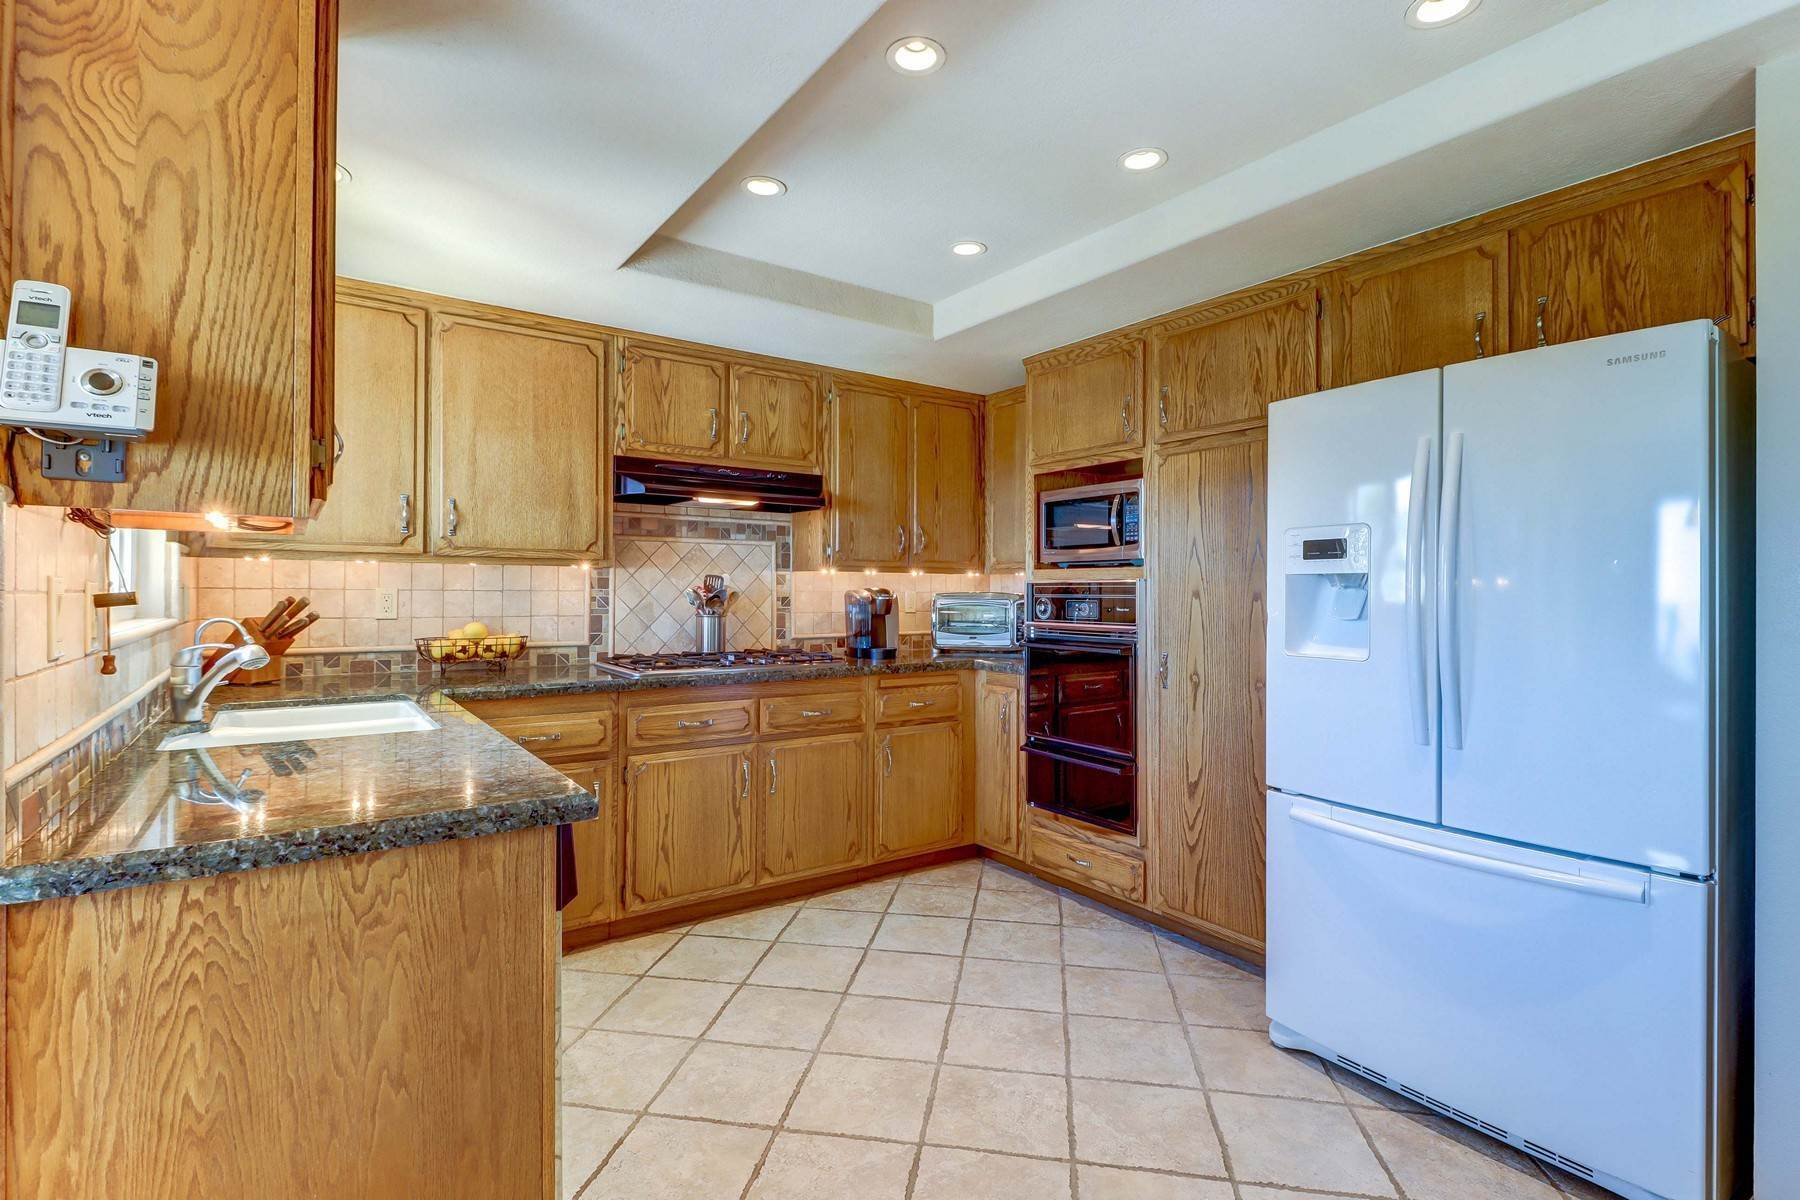 13. Single Family Homes for Sale at 10329 Vista Grove Street, Rancho Cucamonga, CA 91737 10329 Vista Grove Street Rancho Cucamonga, California 91737 United States